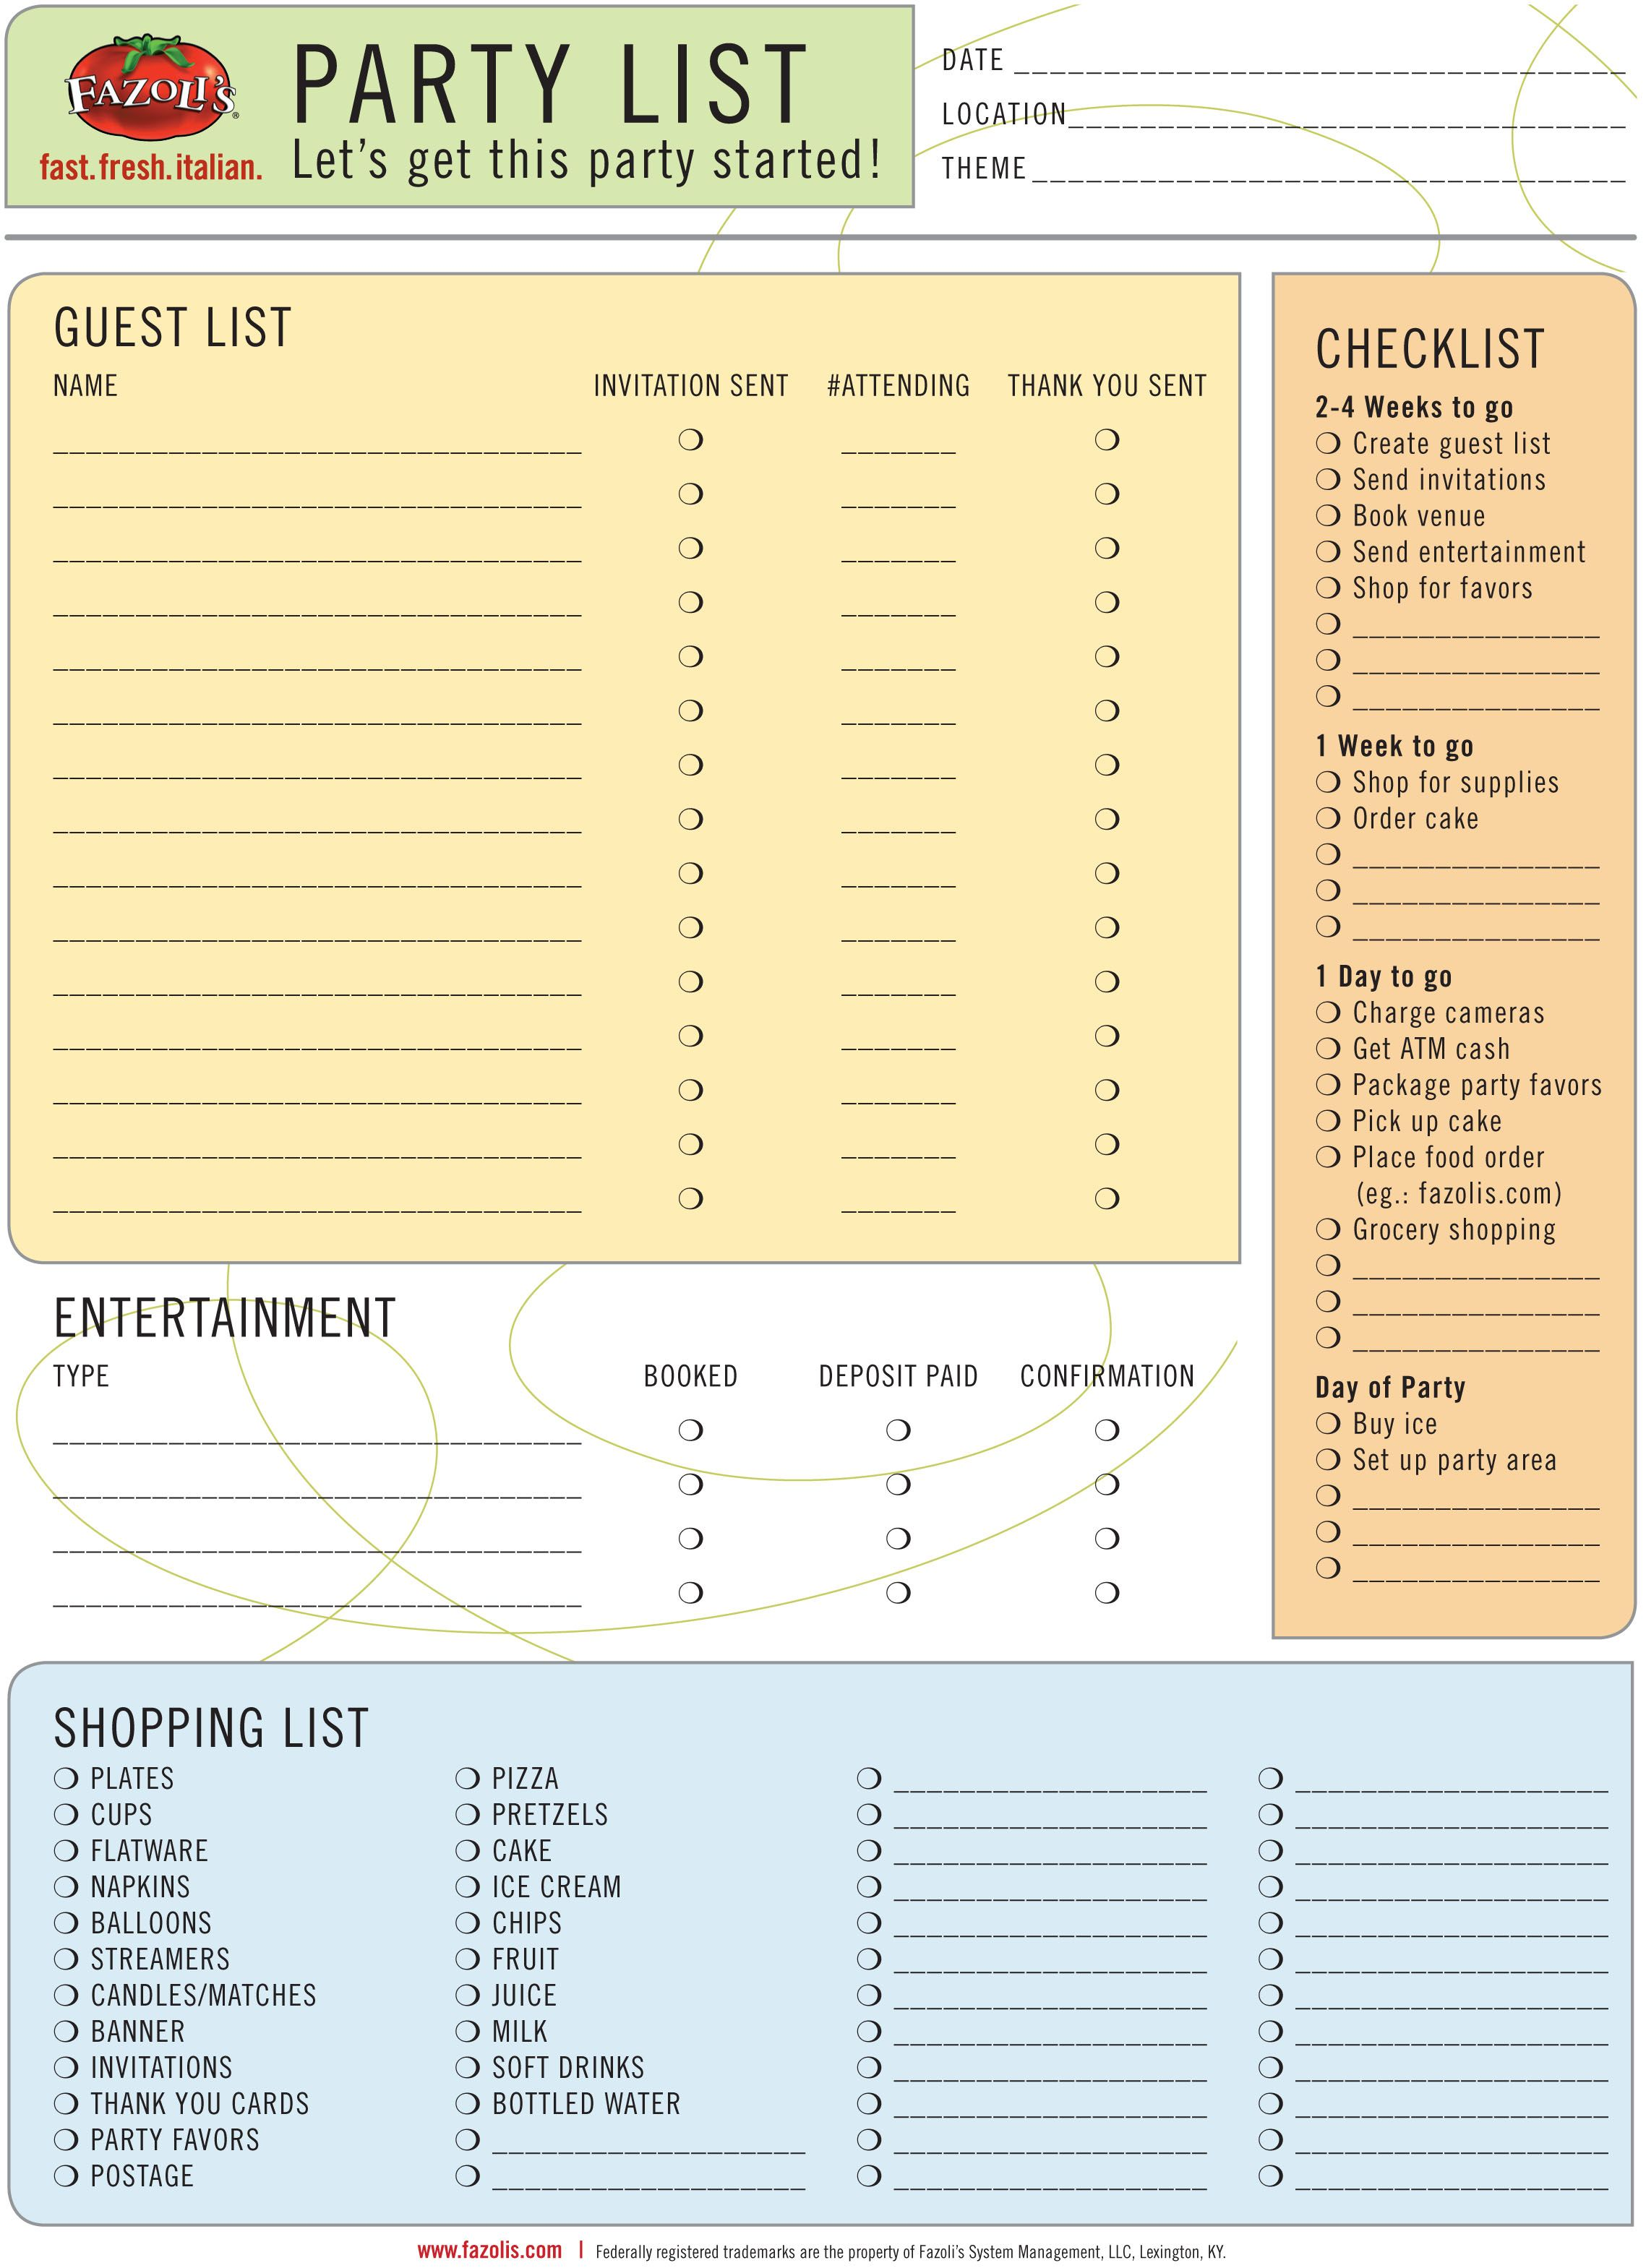 Lets Get The Party Started Printable Party Planning List #Fazolis